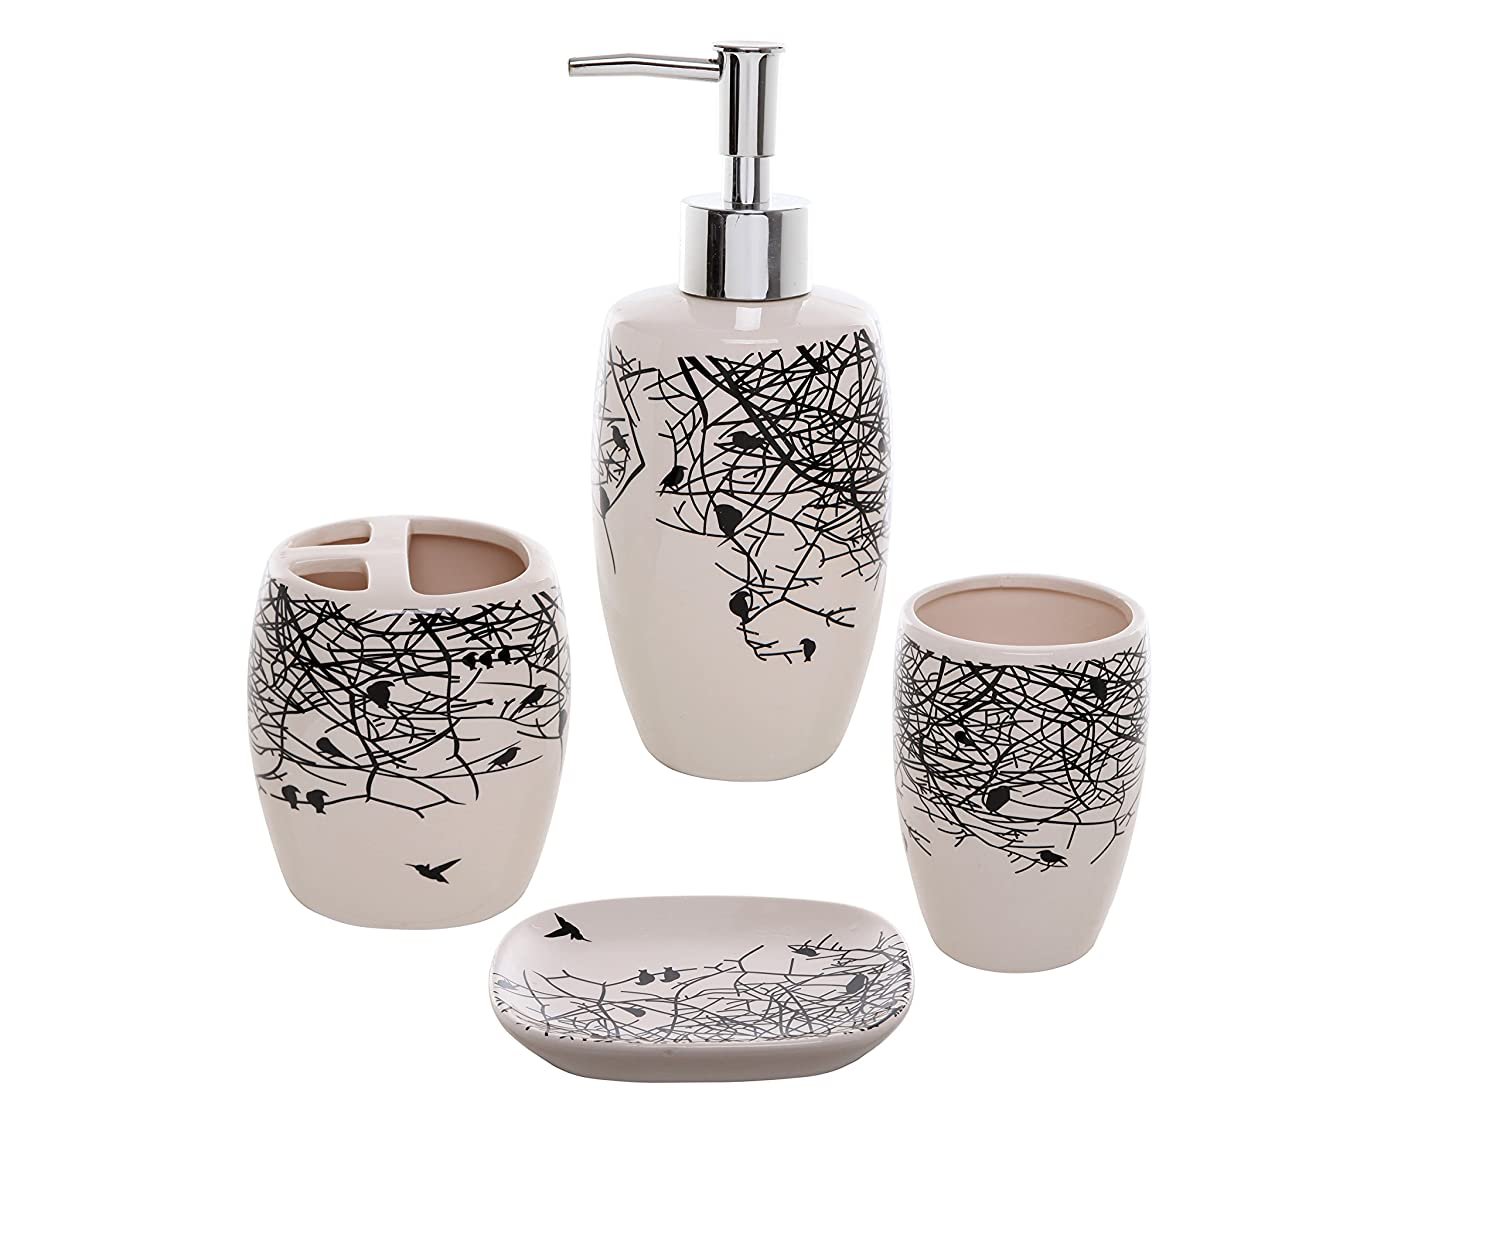 Amazon.com: 4 Piece Beige Ceramic Bathroom Accessories Set ...